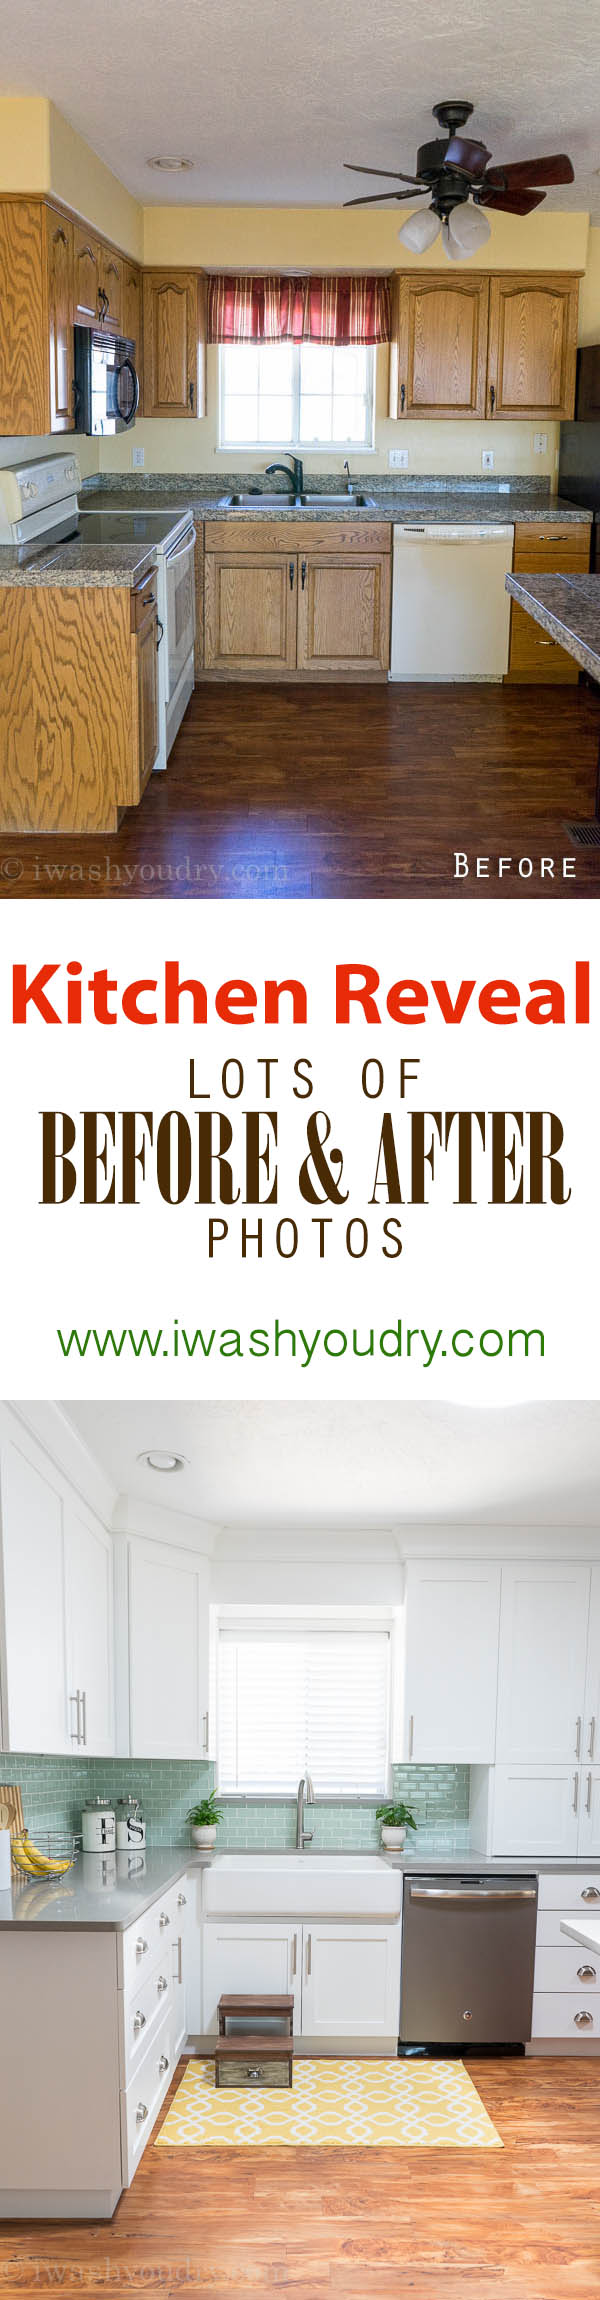 Amazing Before and After photos of a kitchen renovation! Love this!